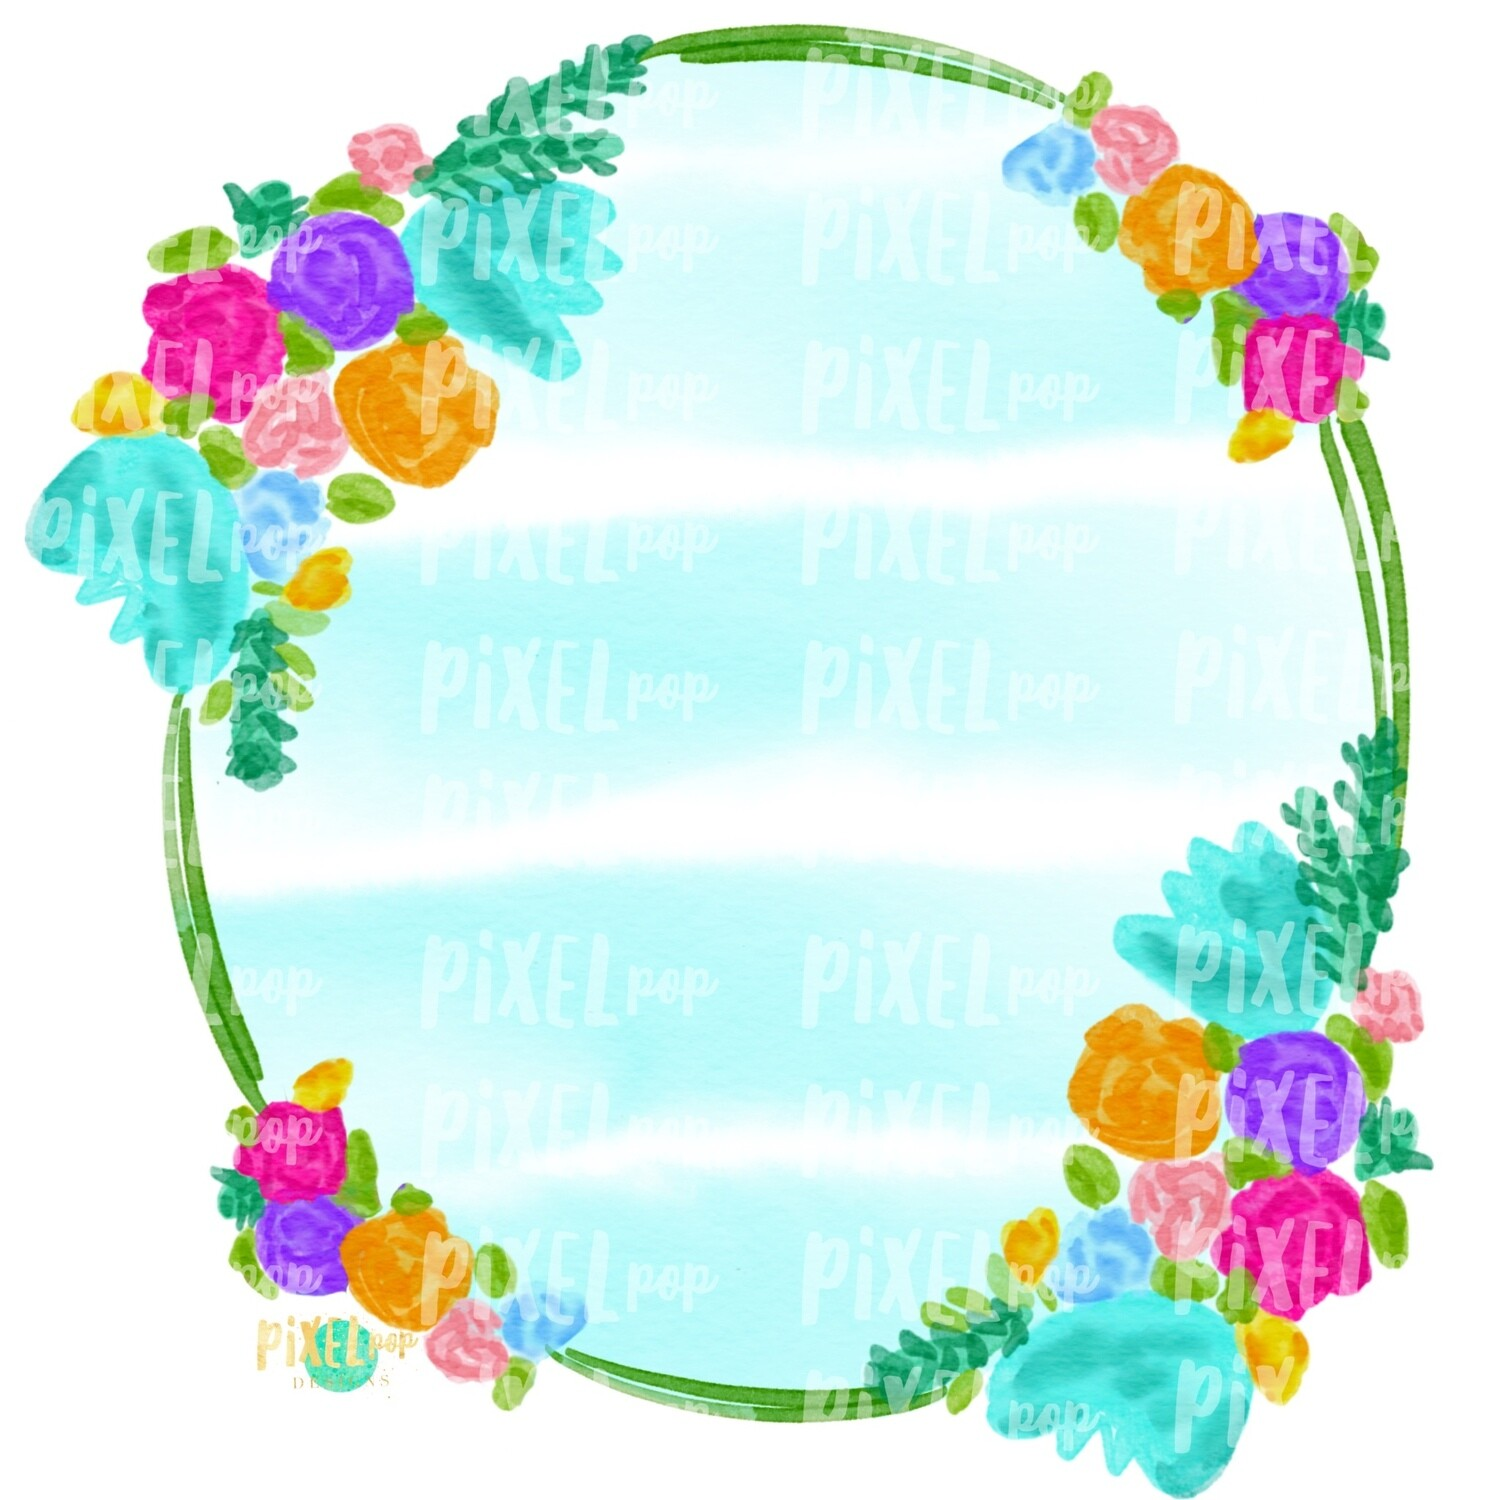 Watercolor Floral Striped Wreath Sublimation PNG | Digital Painting | Spring Flowers | Flower Wreath | Watercolor Floral Art